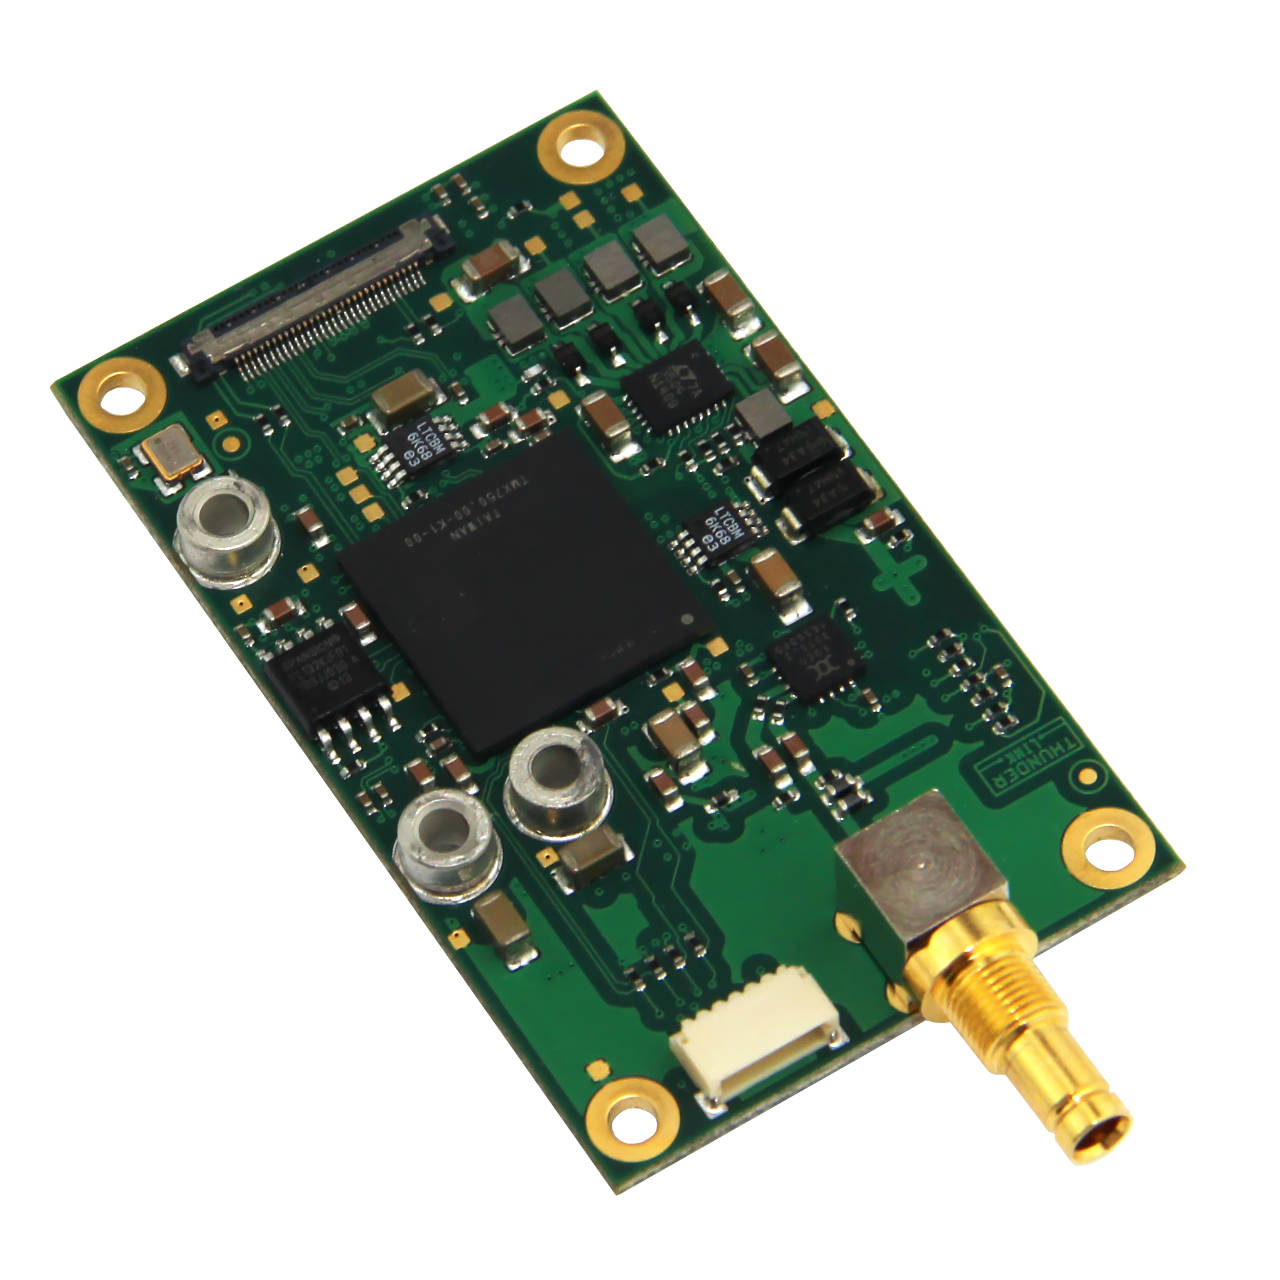 TL8656 | HD-SDI Interface with Trigger and PCOC